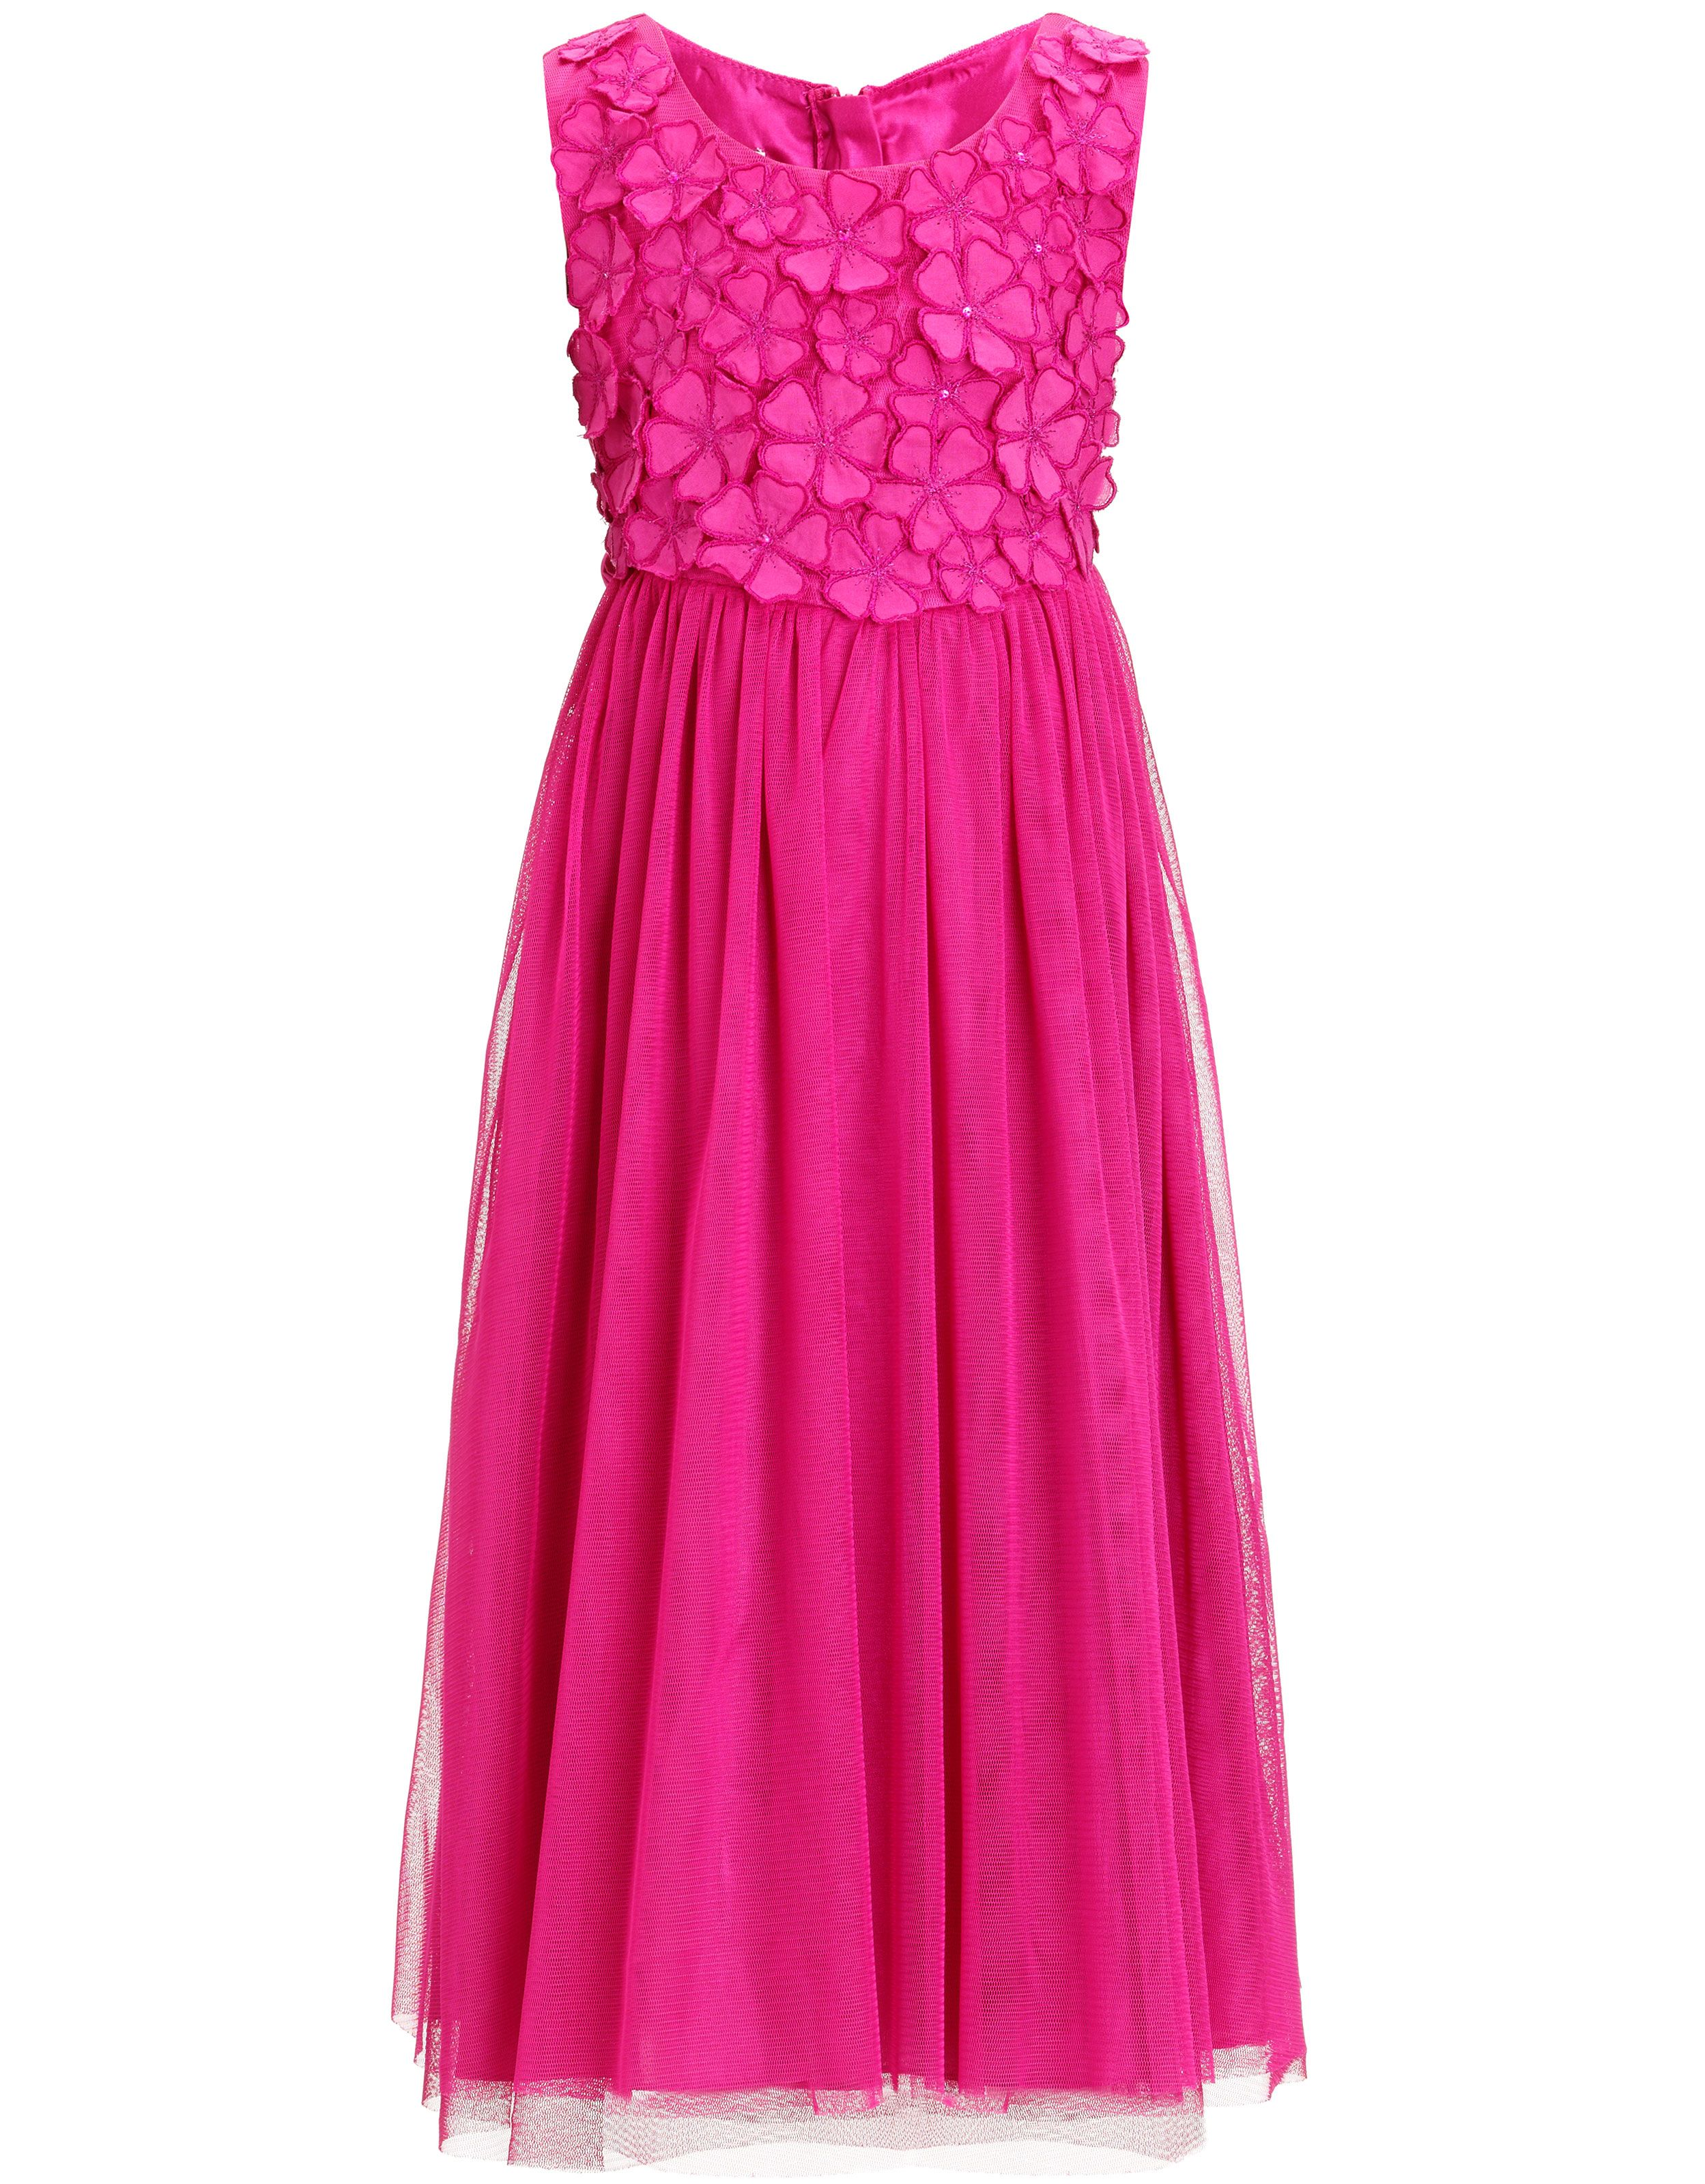 Camellia (Monsoon) | Things to Wear | Pinterest